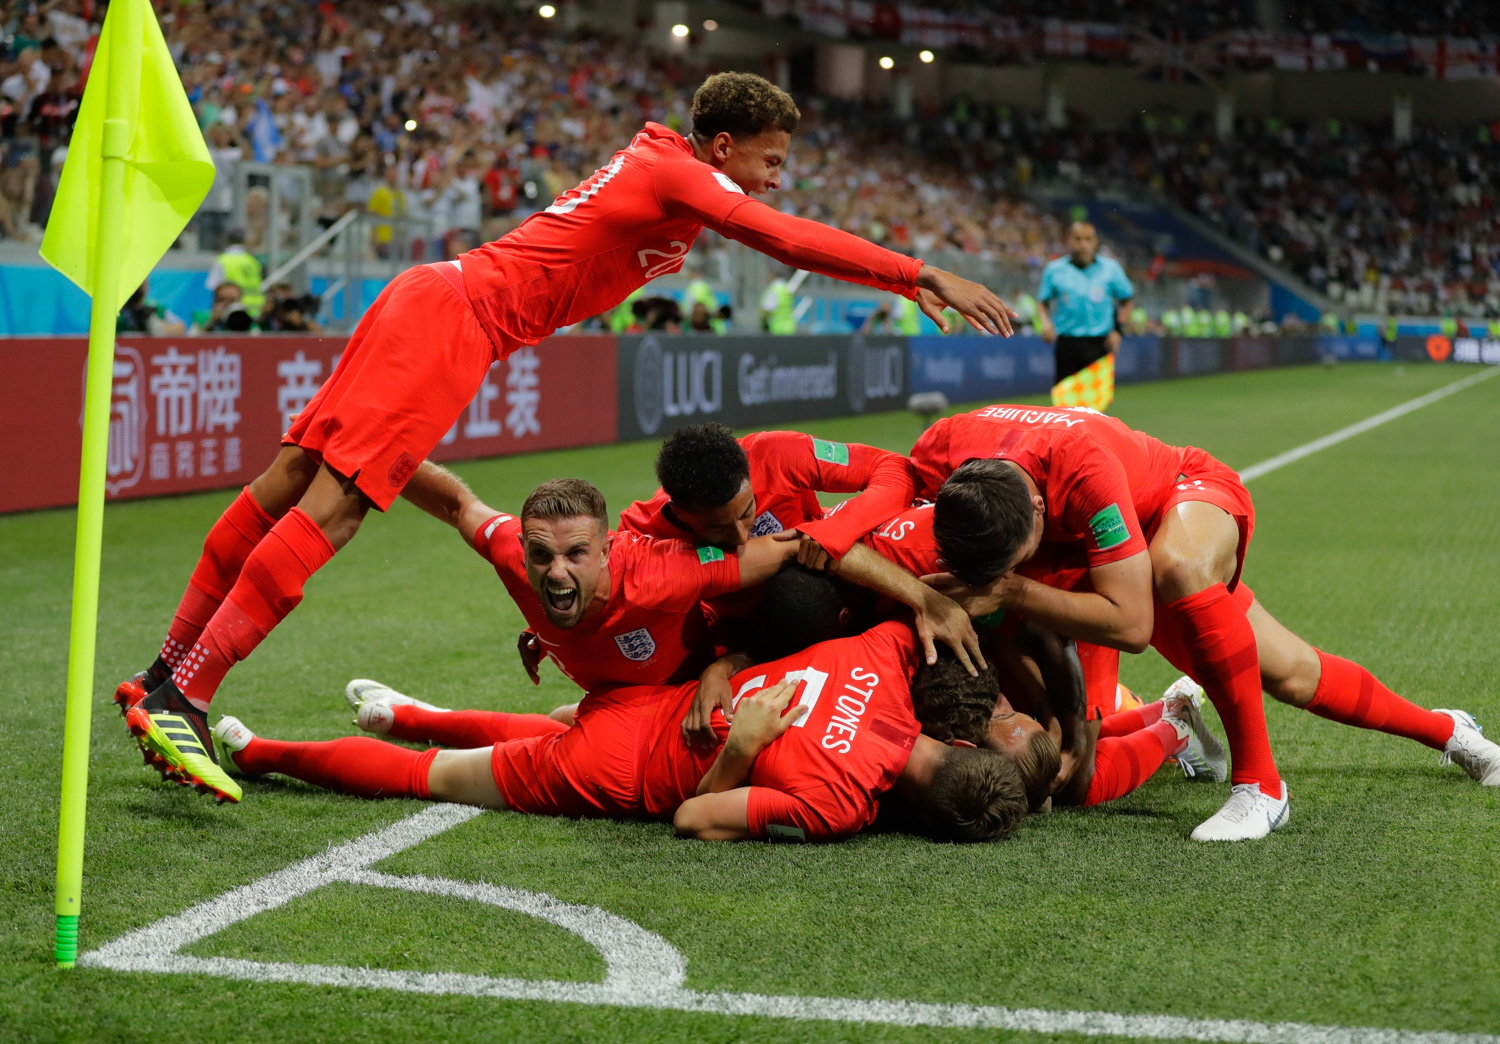 <div class='meta'><div class='origin-logo' data-origin='none'></div><span class='caption-text' data-credit='/Sergei Grits/AP Photo'>England's team celebrate after scoring their side's opening goal against Tunisia during the group G match between Tunisia and England</span></div>